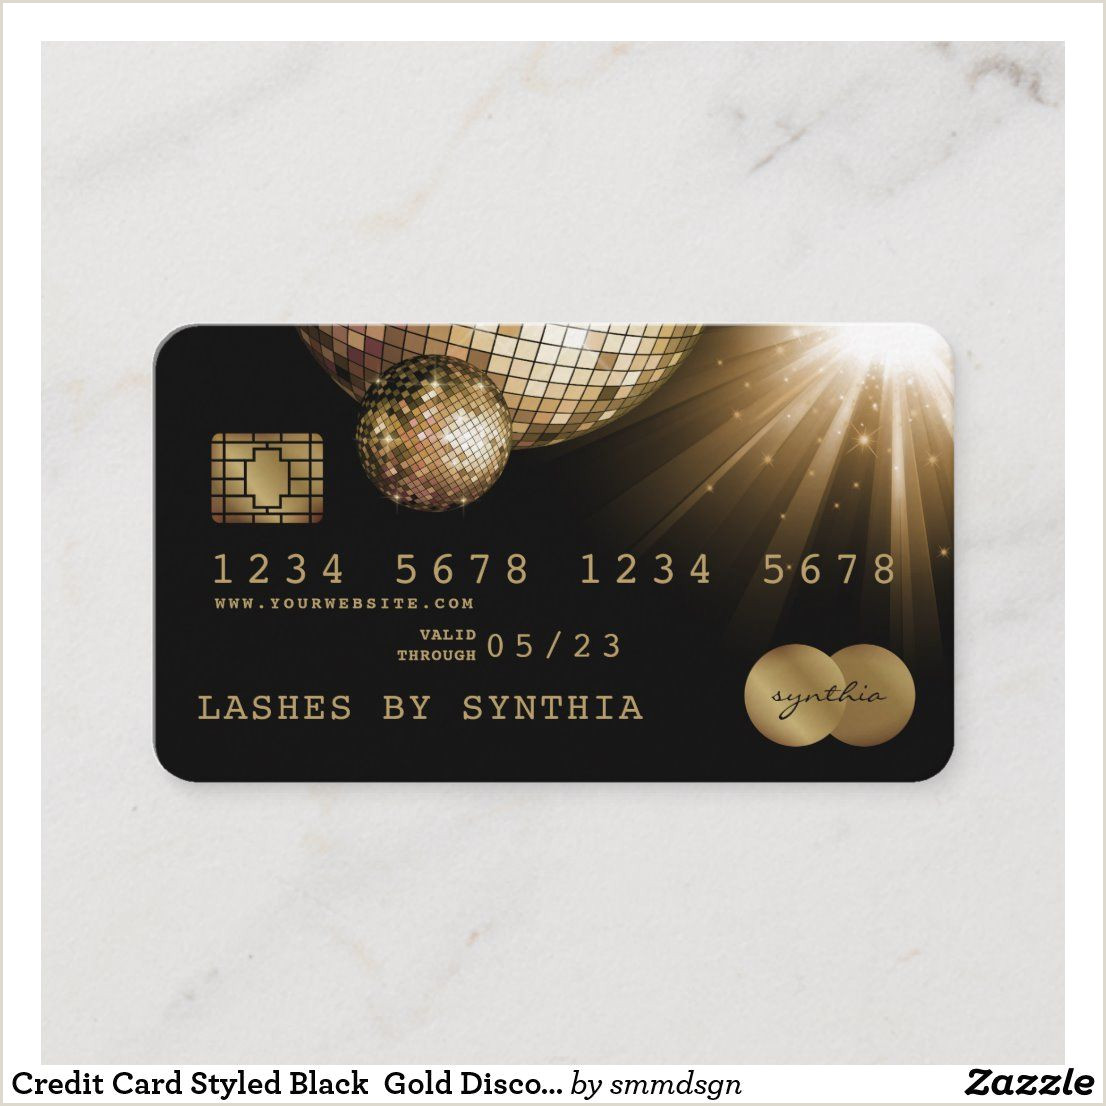 Credit Card Looking Business Cards Credit Card Styled Black Gold Disco Ball